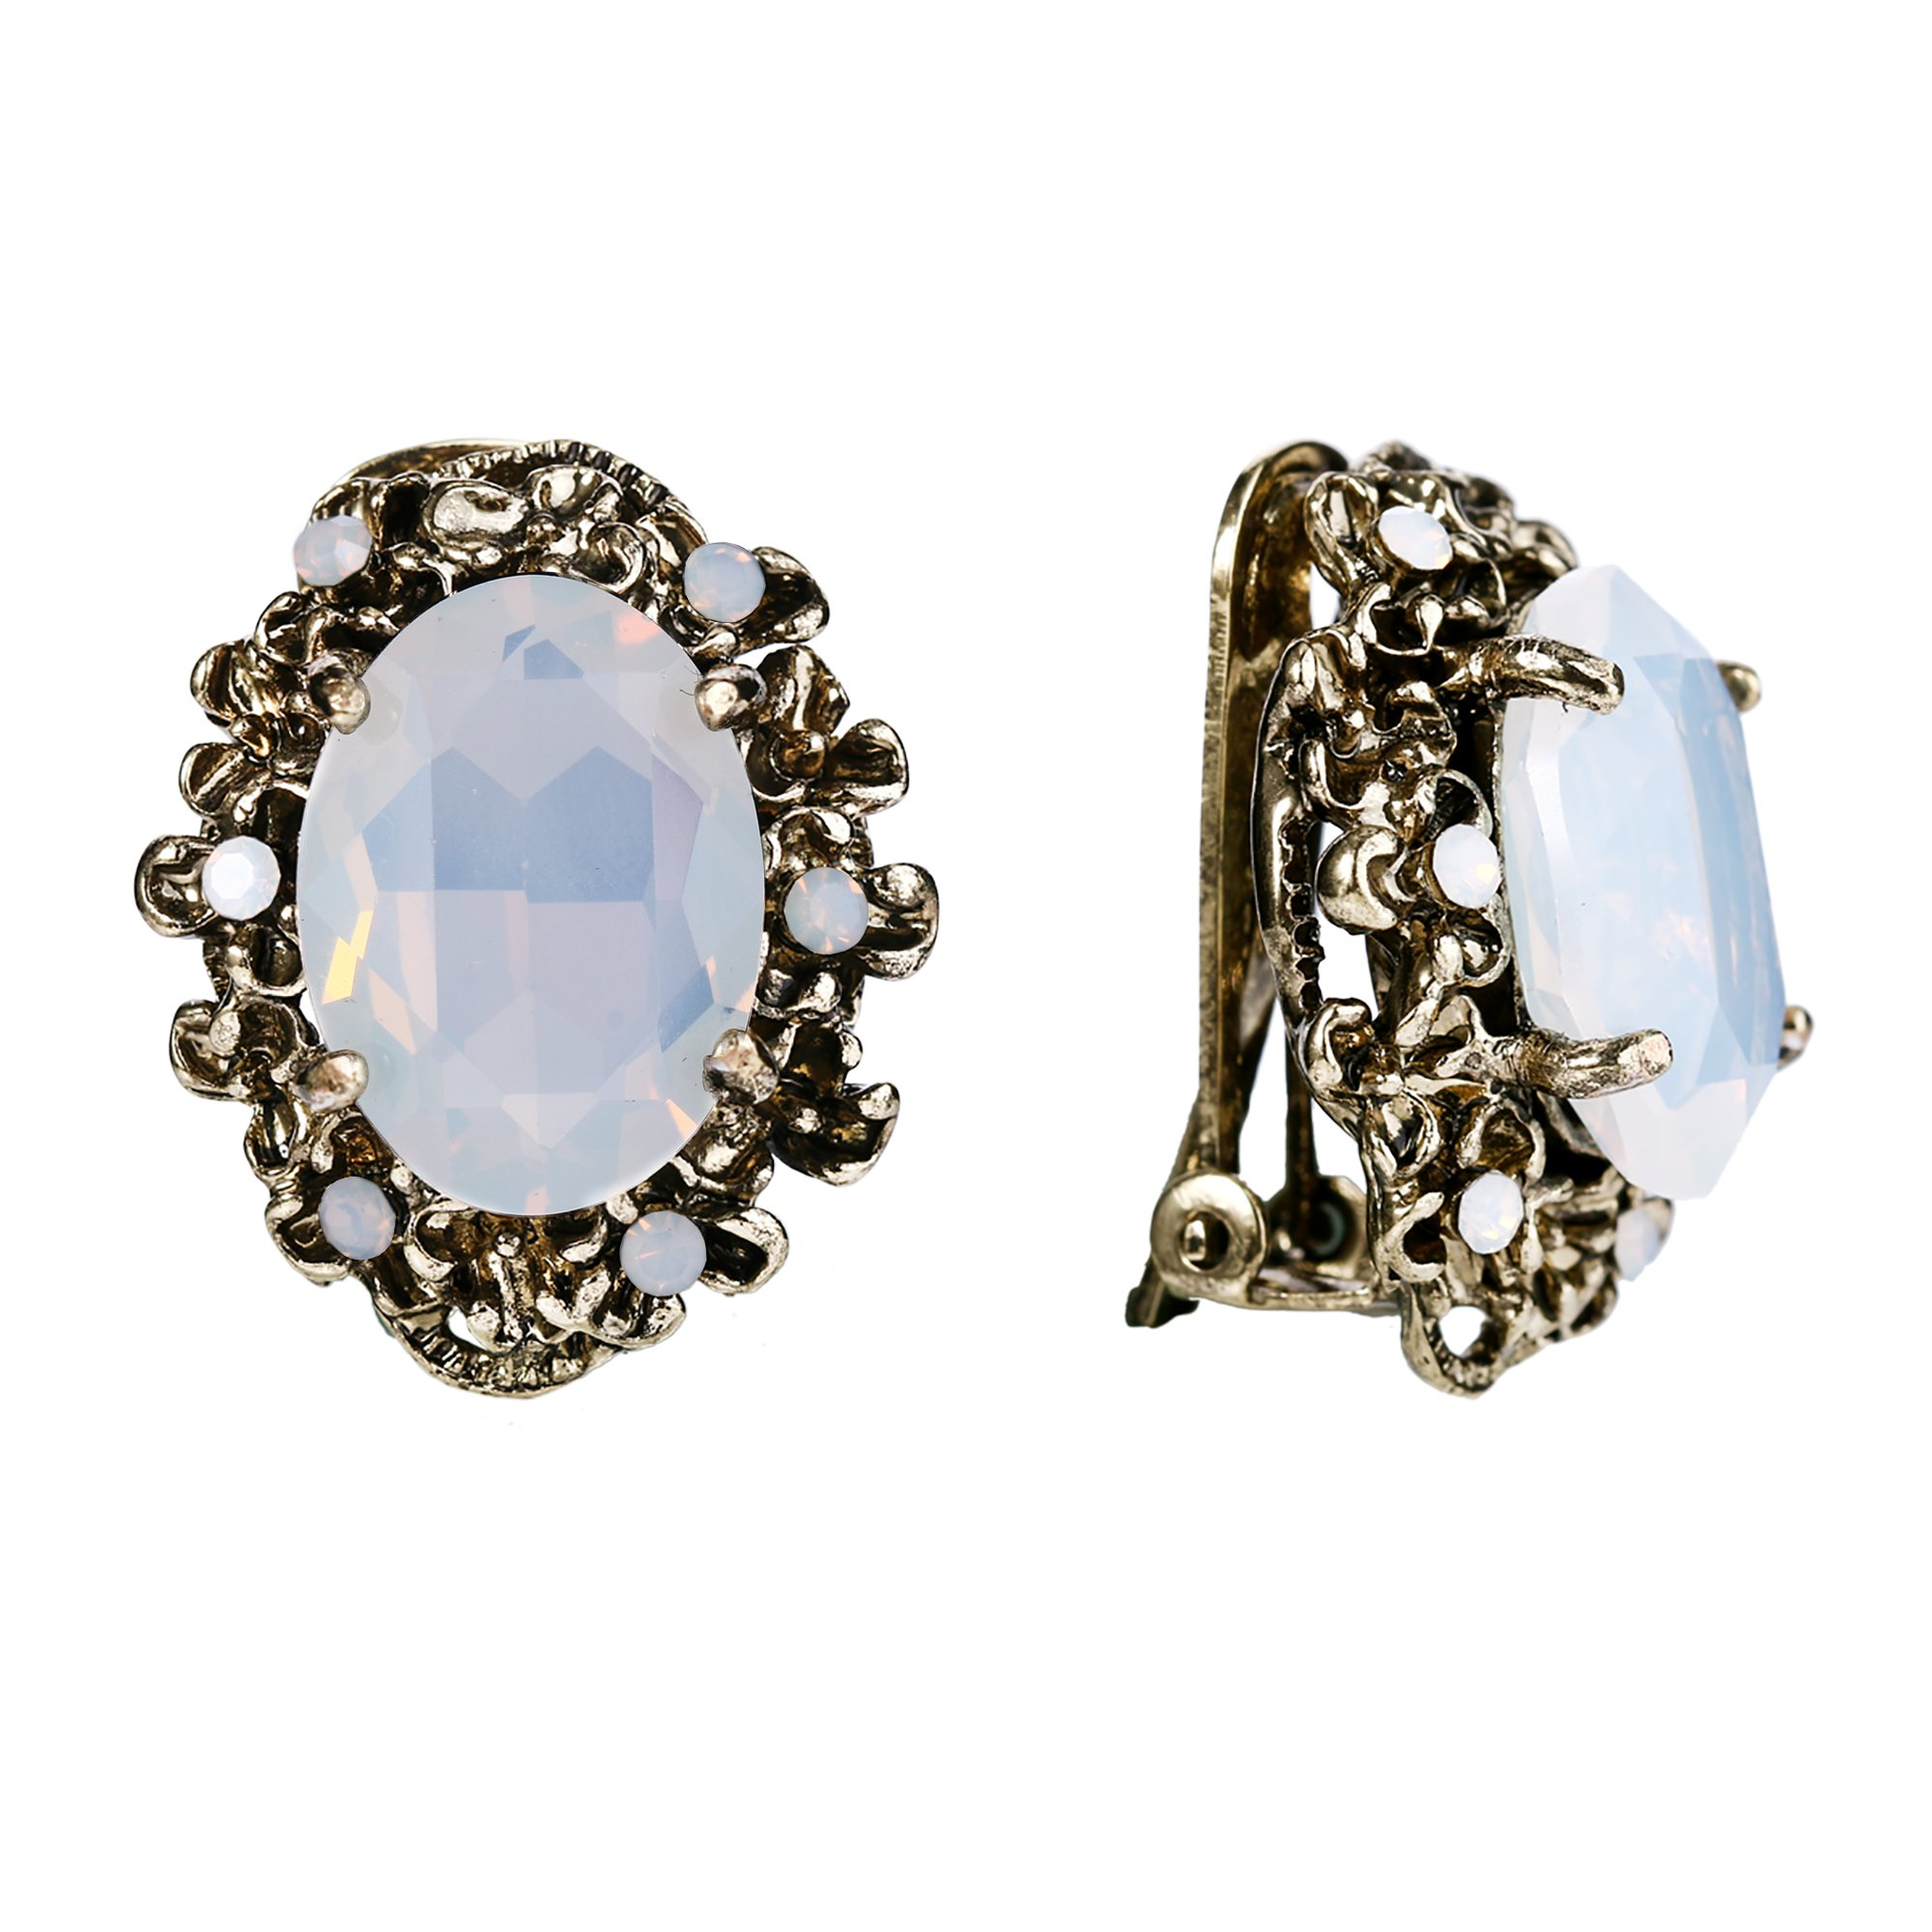 BriLove Antique-Gold-Toned Clip-On Earrings Women's Victorian Style Crystal Floral Cameo Inspired Oval Earrings Opal Color